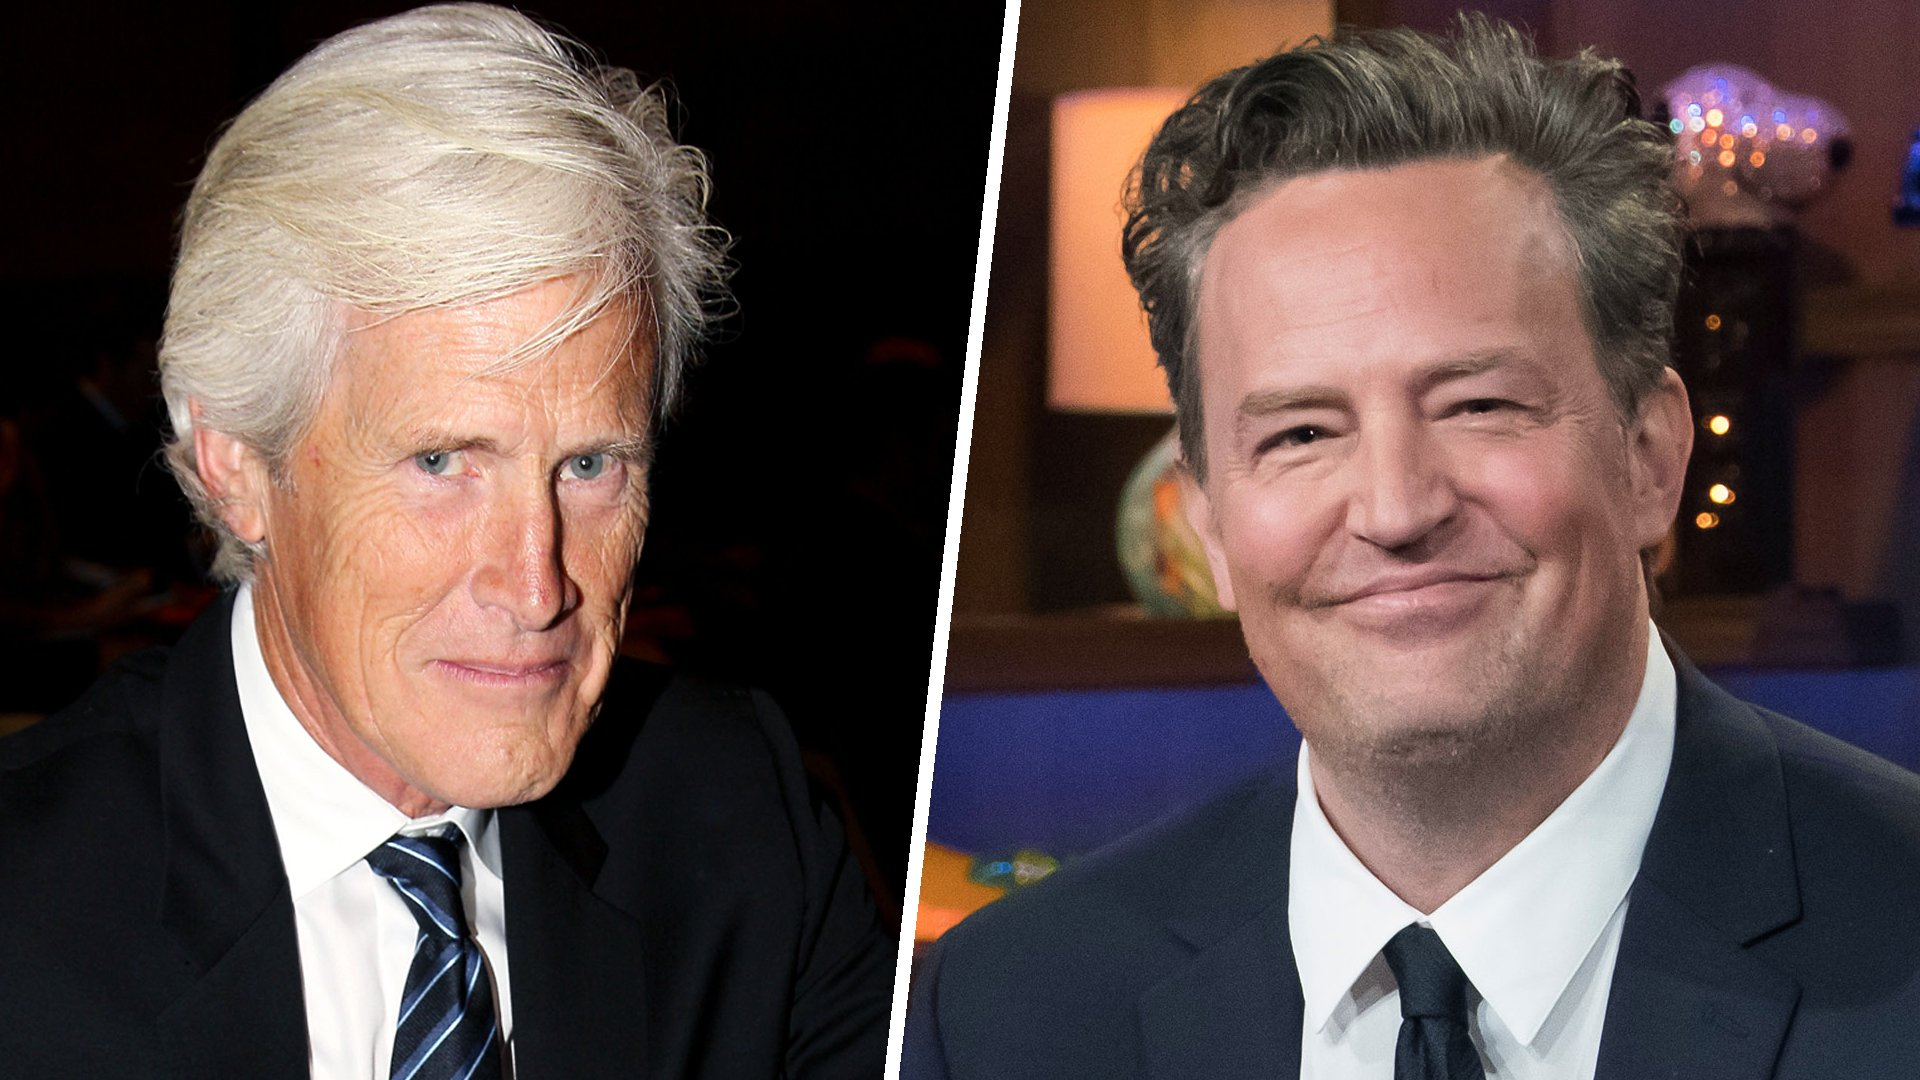 Keith Morrison dishes on being Matthew Perry's stepdad https://t.co/zYO8Nz23aj https://t.co/tOr322CVAQ